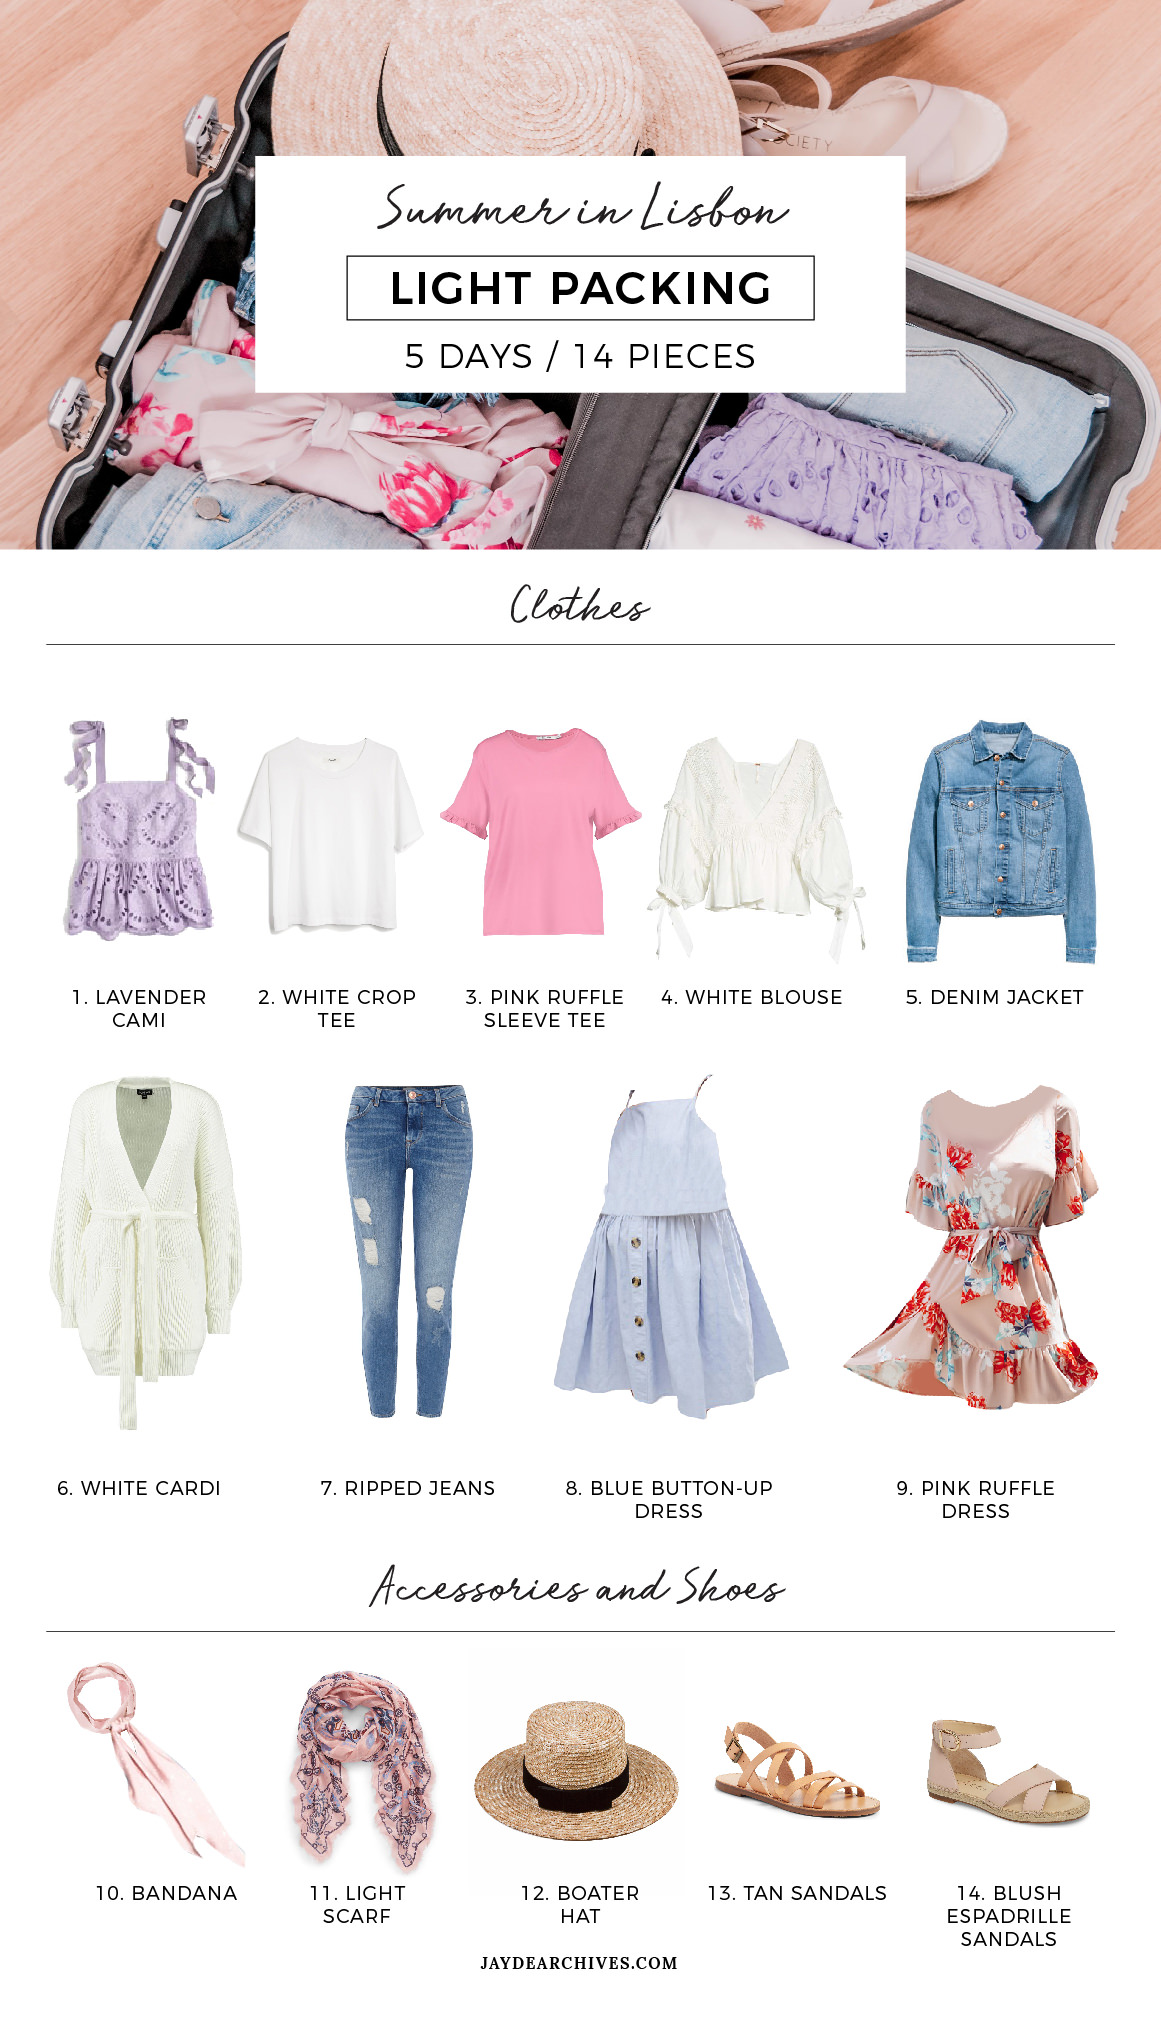 Travel Capsule Wardrobe For Lisbon Jayde Archives